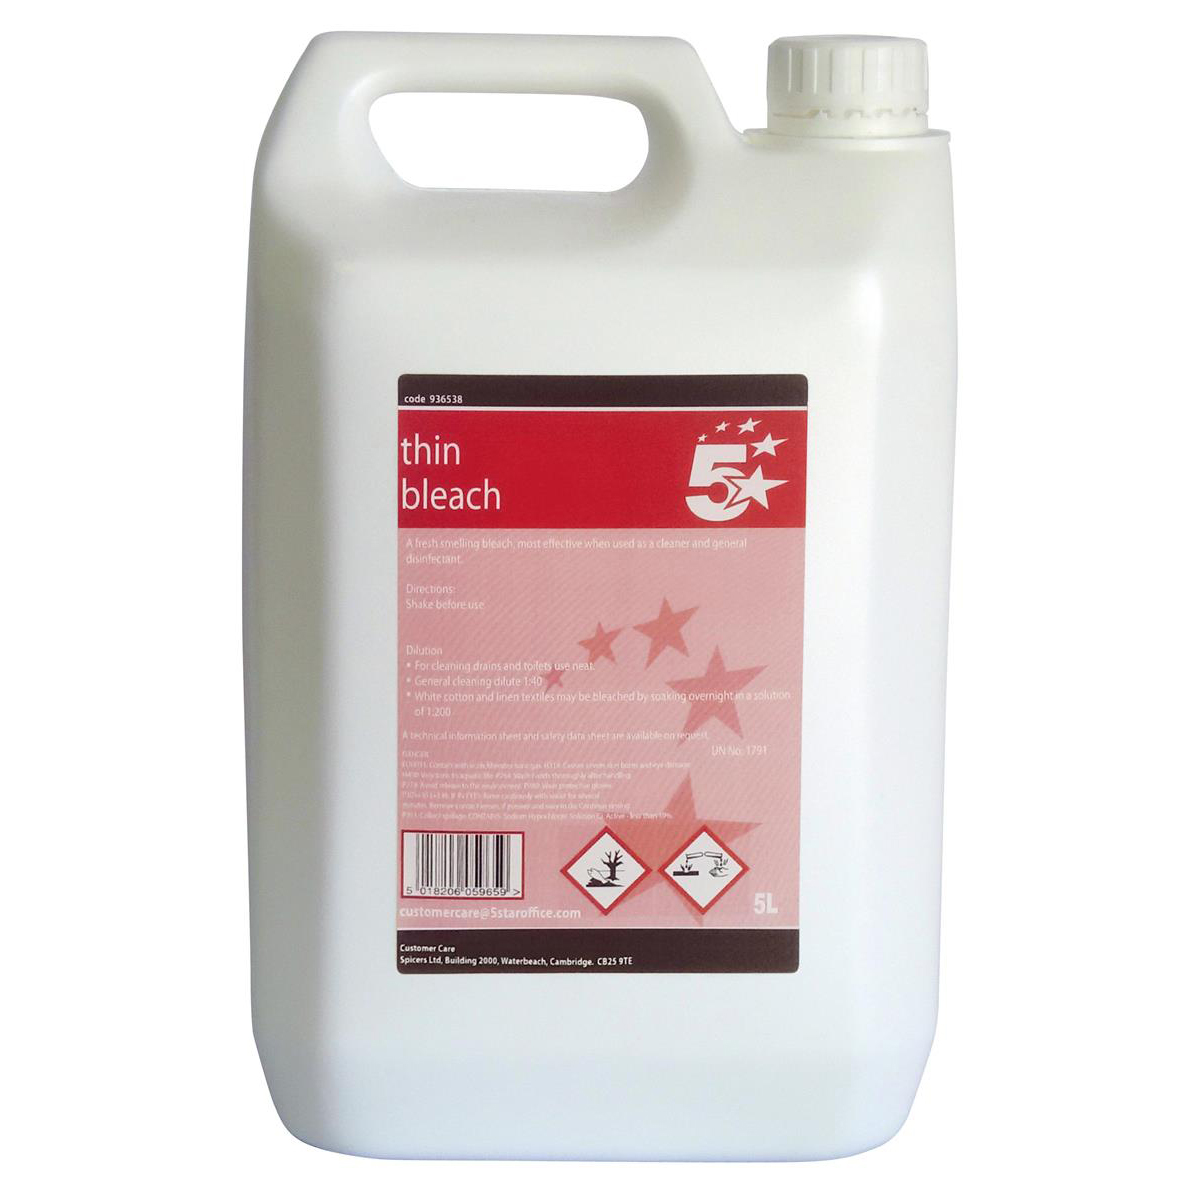 Cleaning Chemicals 5 Star Facilities Thin Bleach General Purpose Cleaner 5 Litre